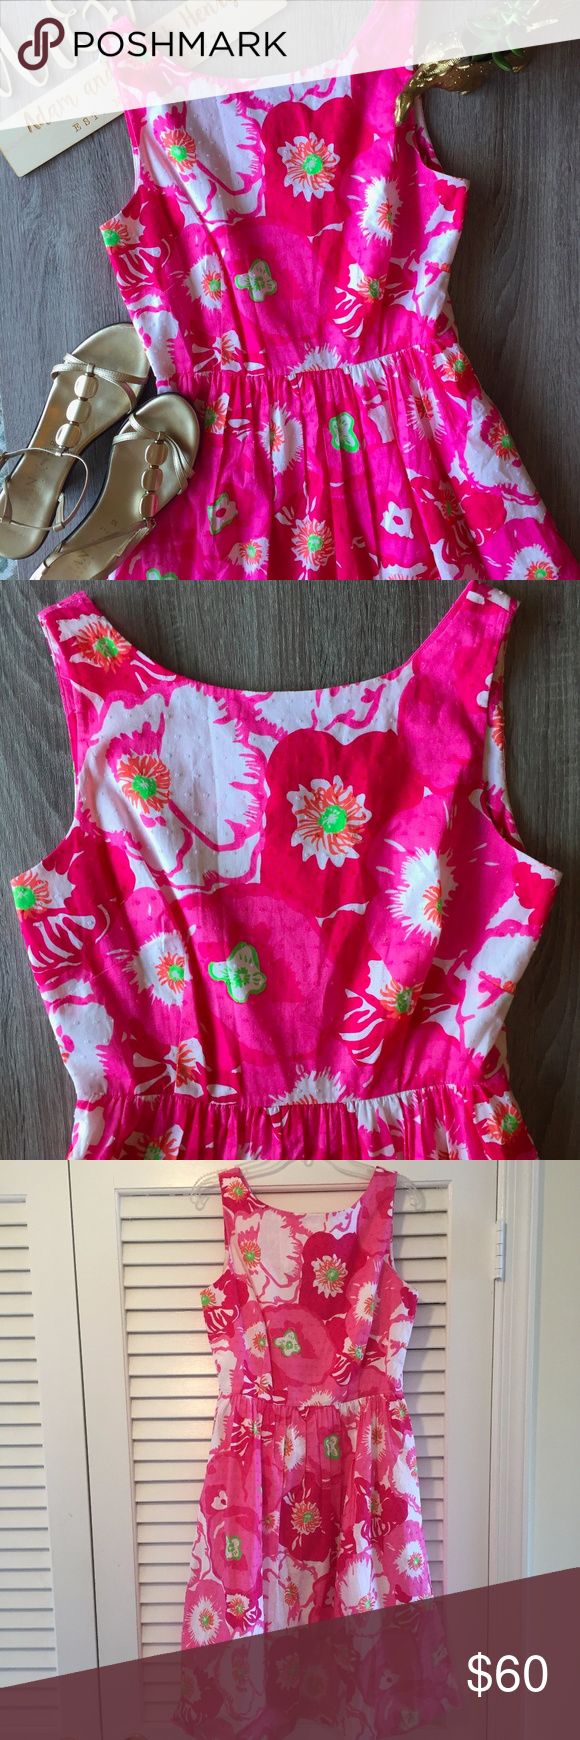 Lilly Pulitzer Pink Floral Dress - LIKE NEW Celebrate spring all year long in this adorable floral pink dress from Lilly Pulitzer!  This dress is like new, in near perfect condition.  I only wore it once and you wouldn't be able to tell.  The skirt of the dress flares out for a girly and flirty look.    - Size 6; Approx. 36 in. bust, 27 in. waist - Approx. 37 inch in length - 100% cotton Lilly Pulitzer Dresses